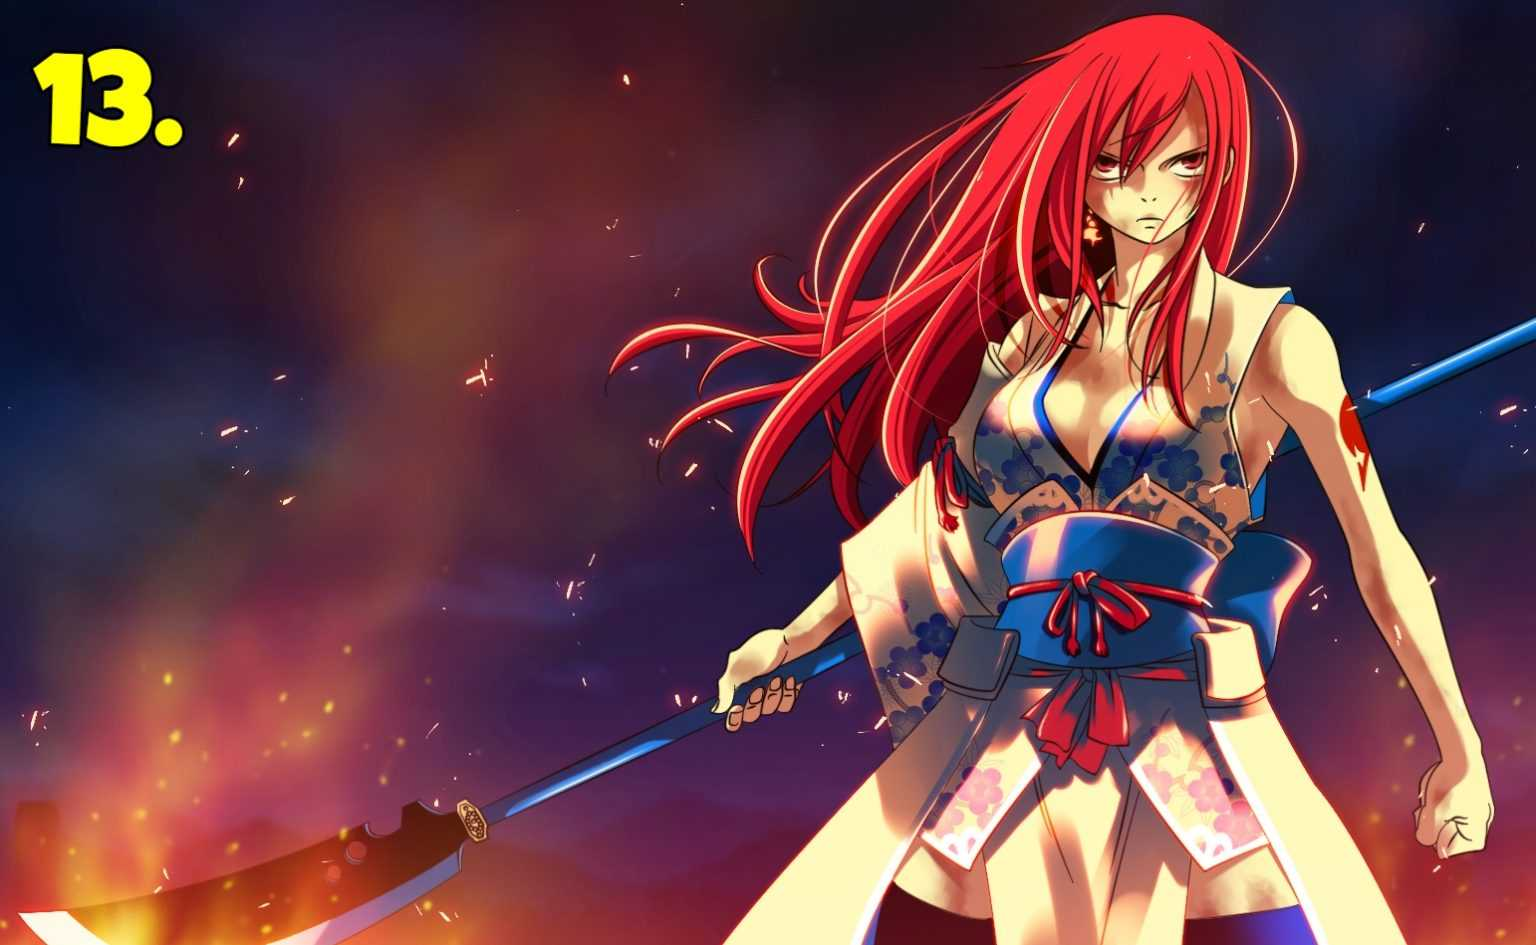 Erza-Scarlet-Fairy-Tail